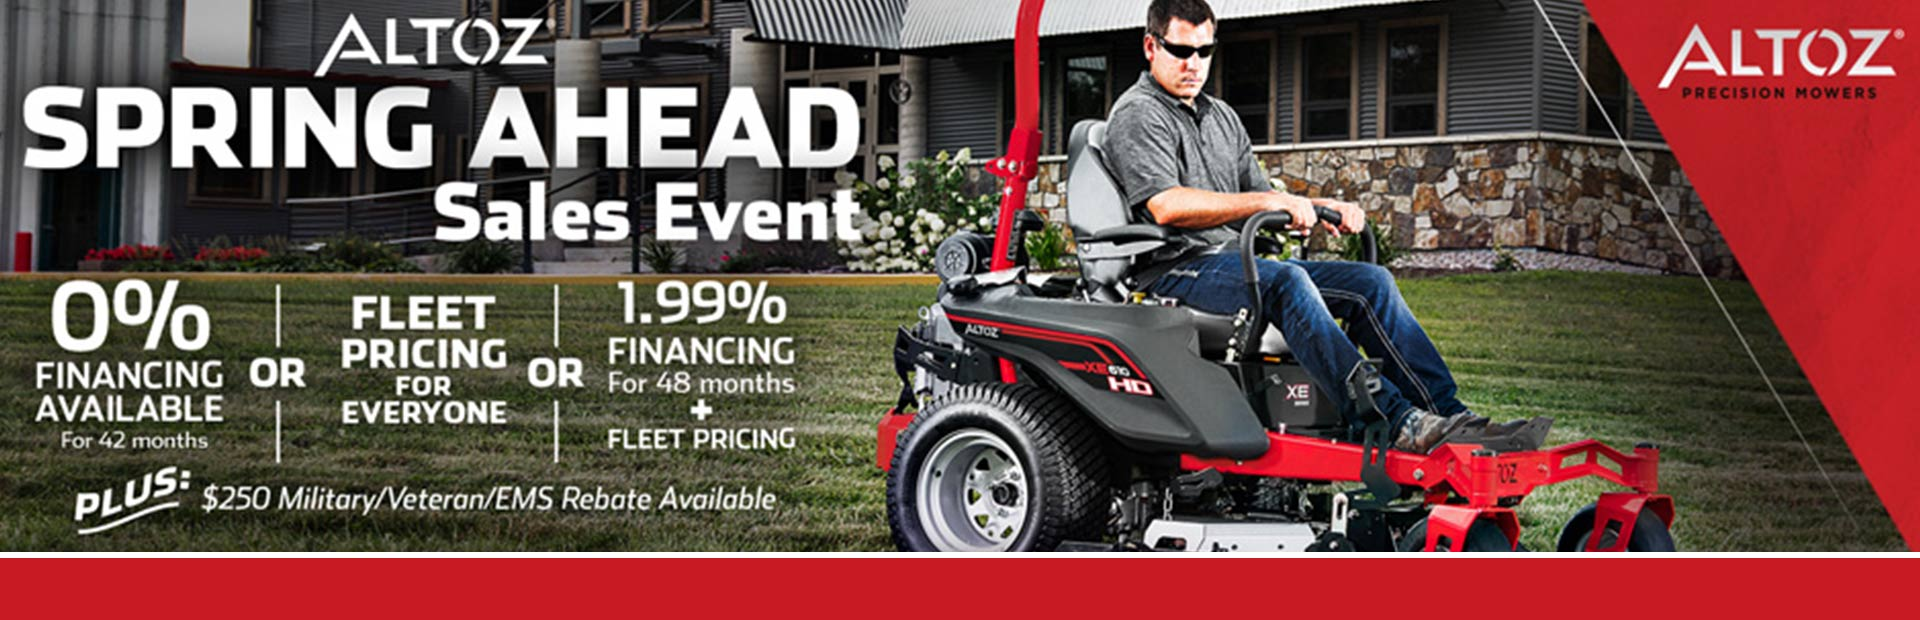 Altoz: Spring Ahead Sales Event